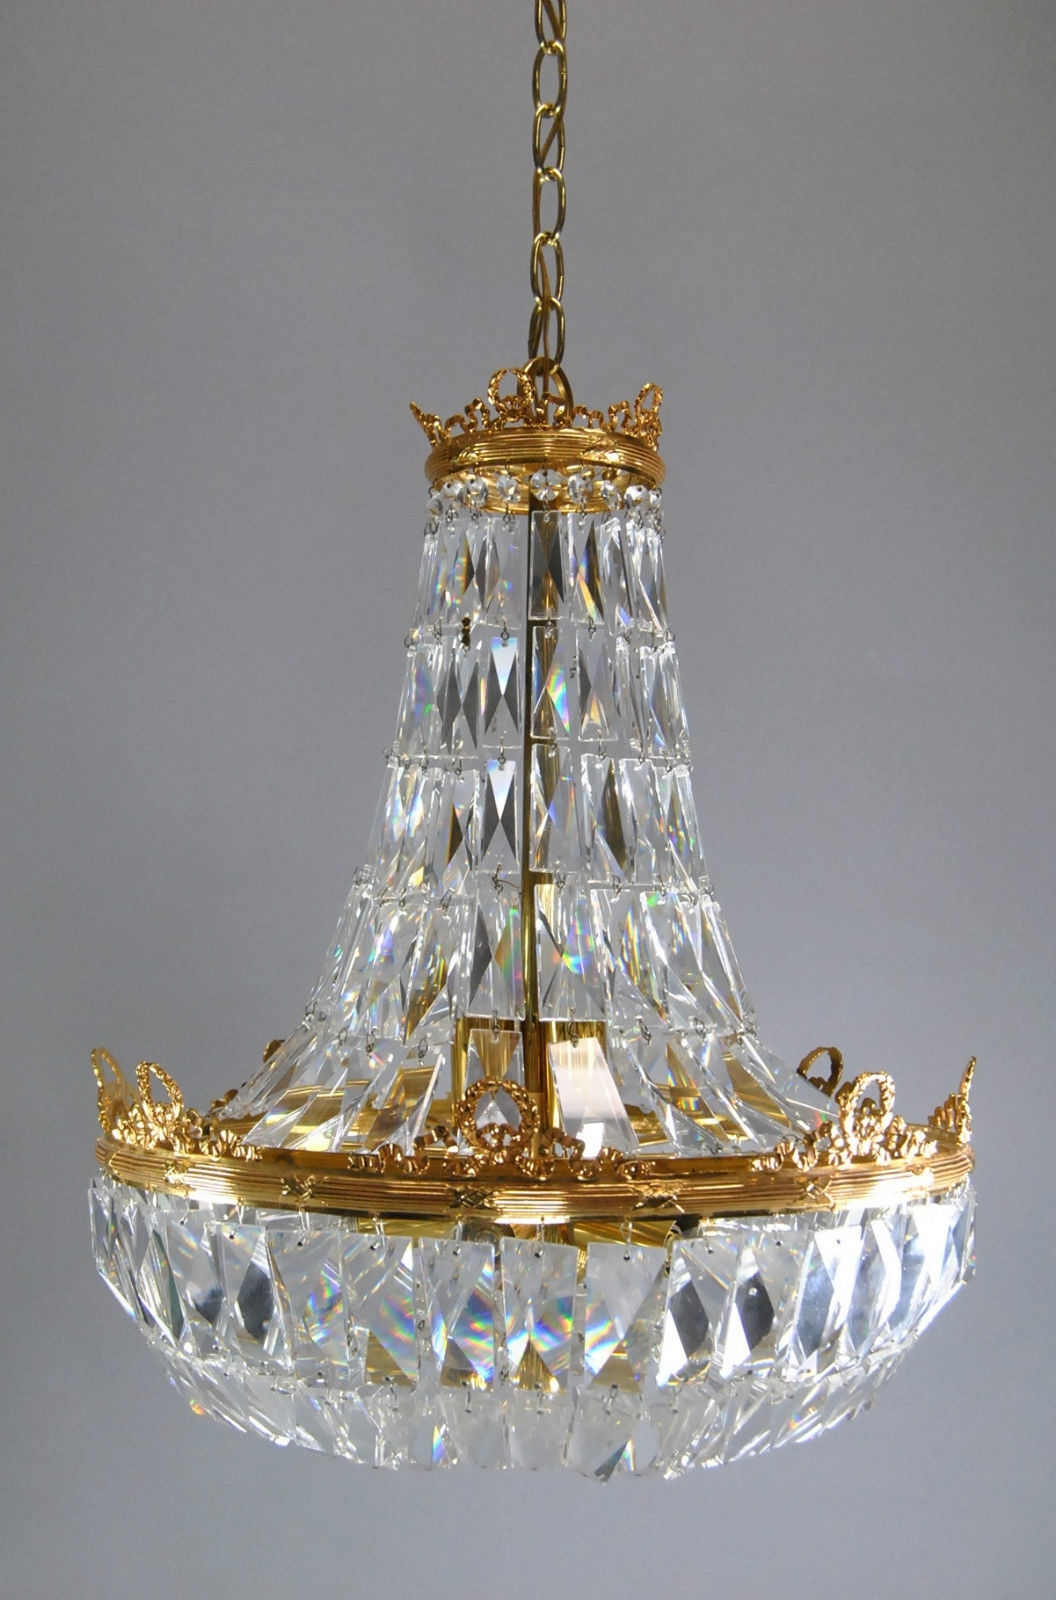 Most Recent Brass And Crystal Chandelier Throughout French Basket Form Crystal Chandelier With Brass Frame (View 12 of 20)